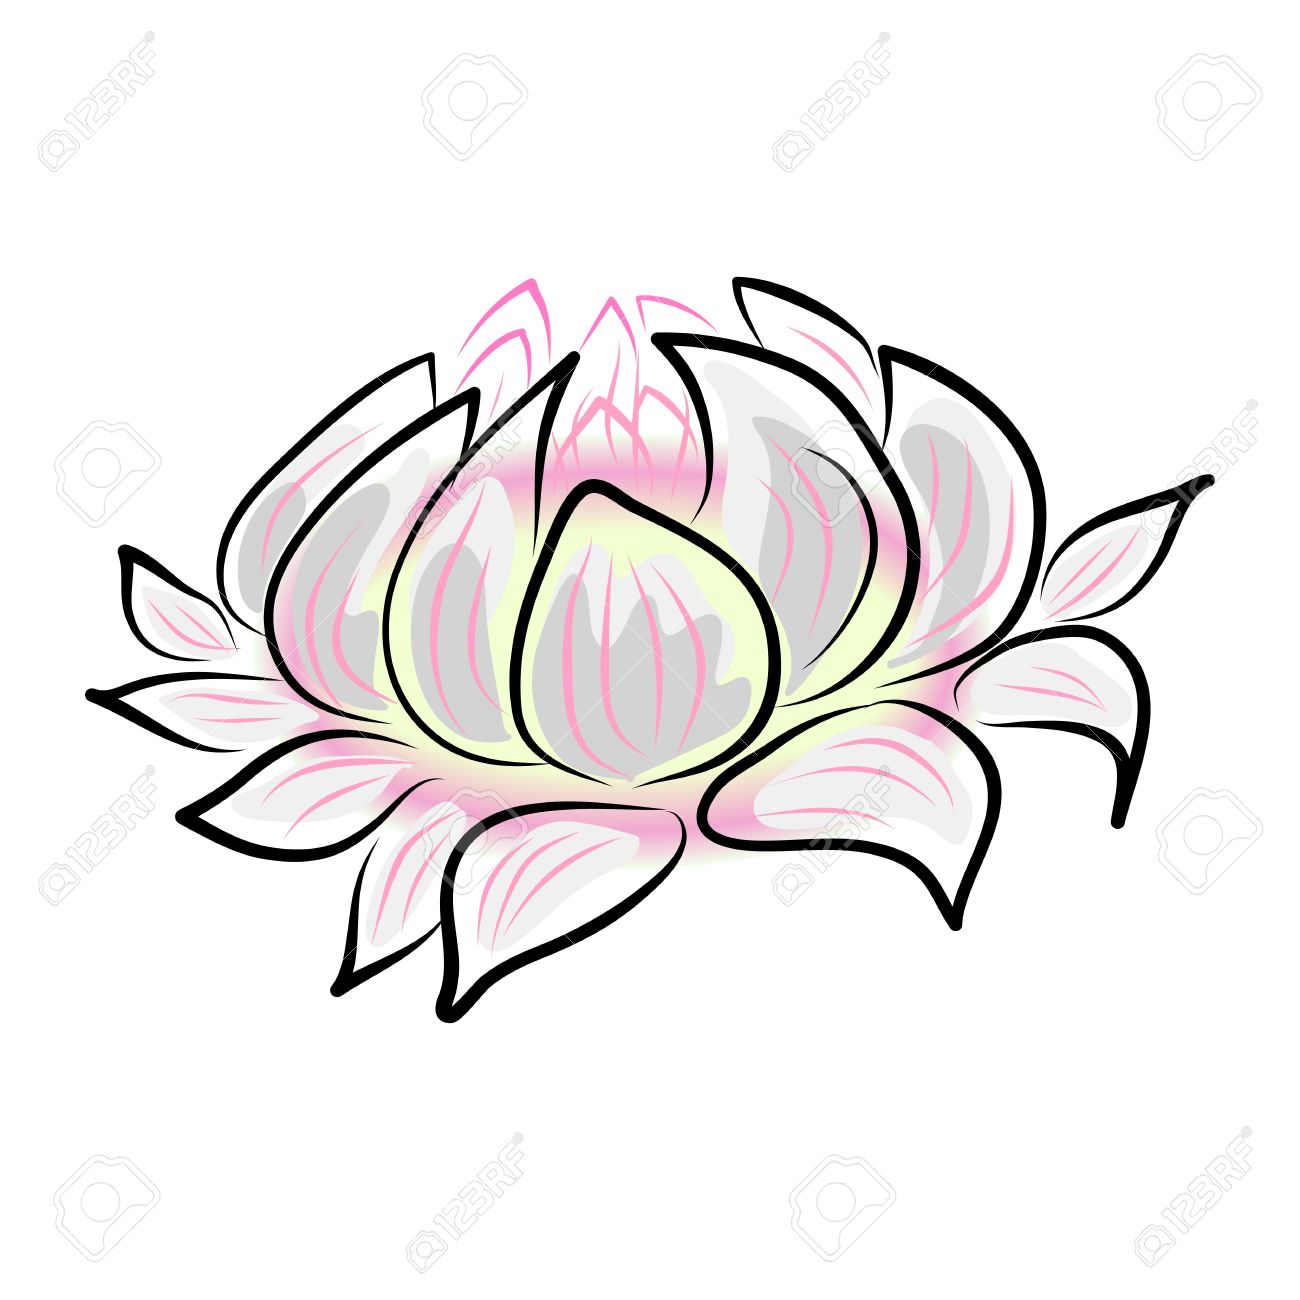 Hand drawing water lily lotus flower royalty free cliparts hand drawing water lily lotus flower stock vector 19469723 mightylinksfo